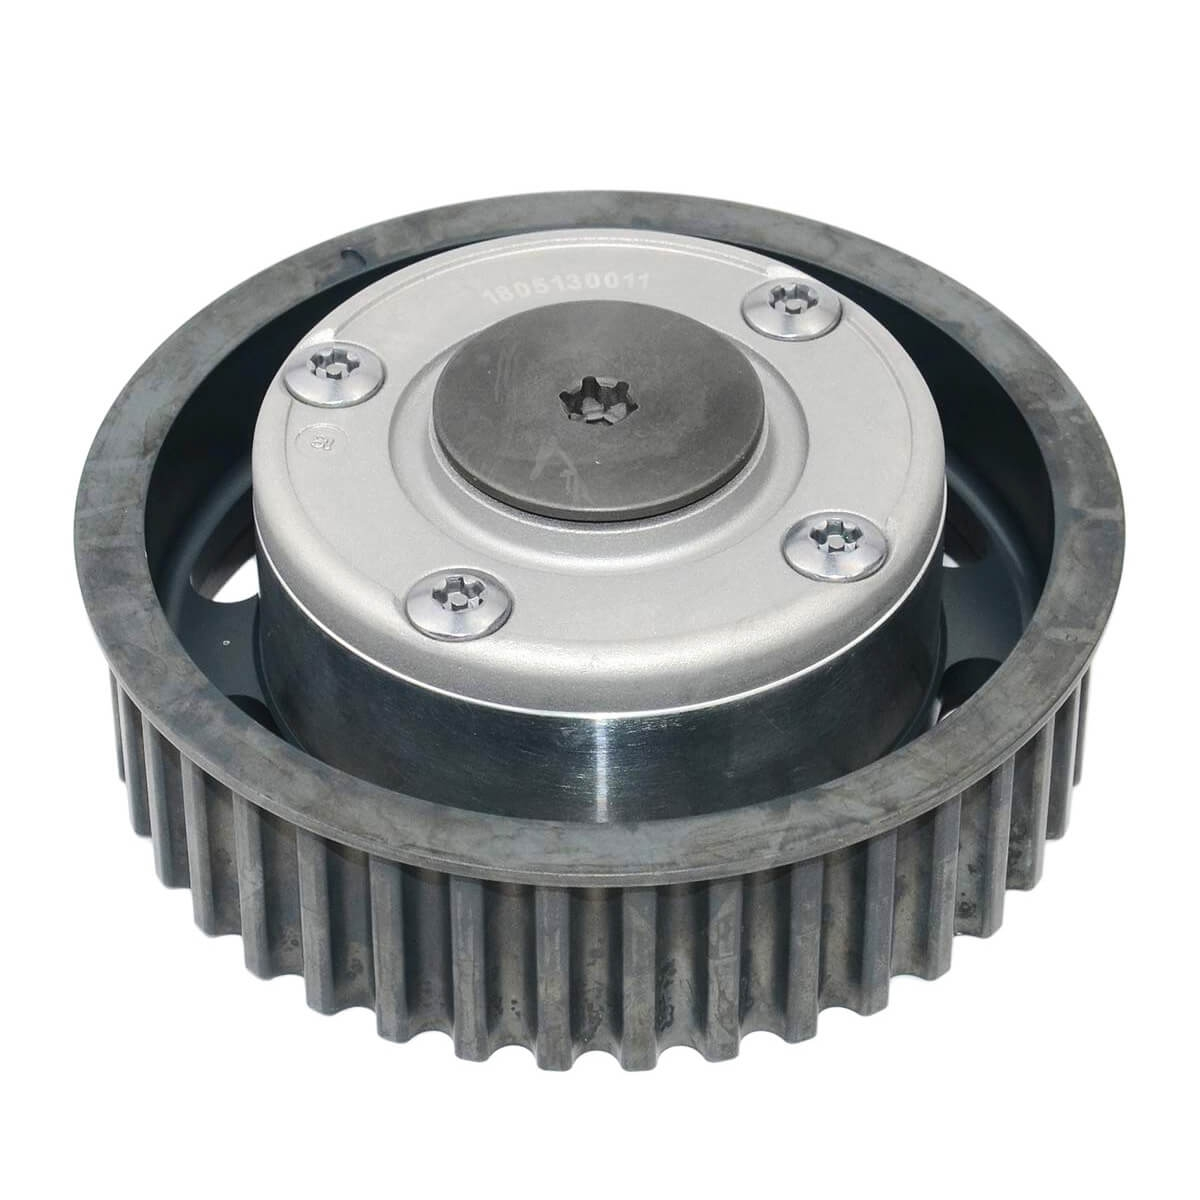 DACIA DUSTER Cam Dephaser Pulley